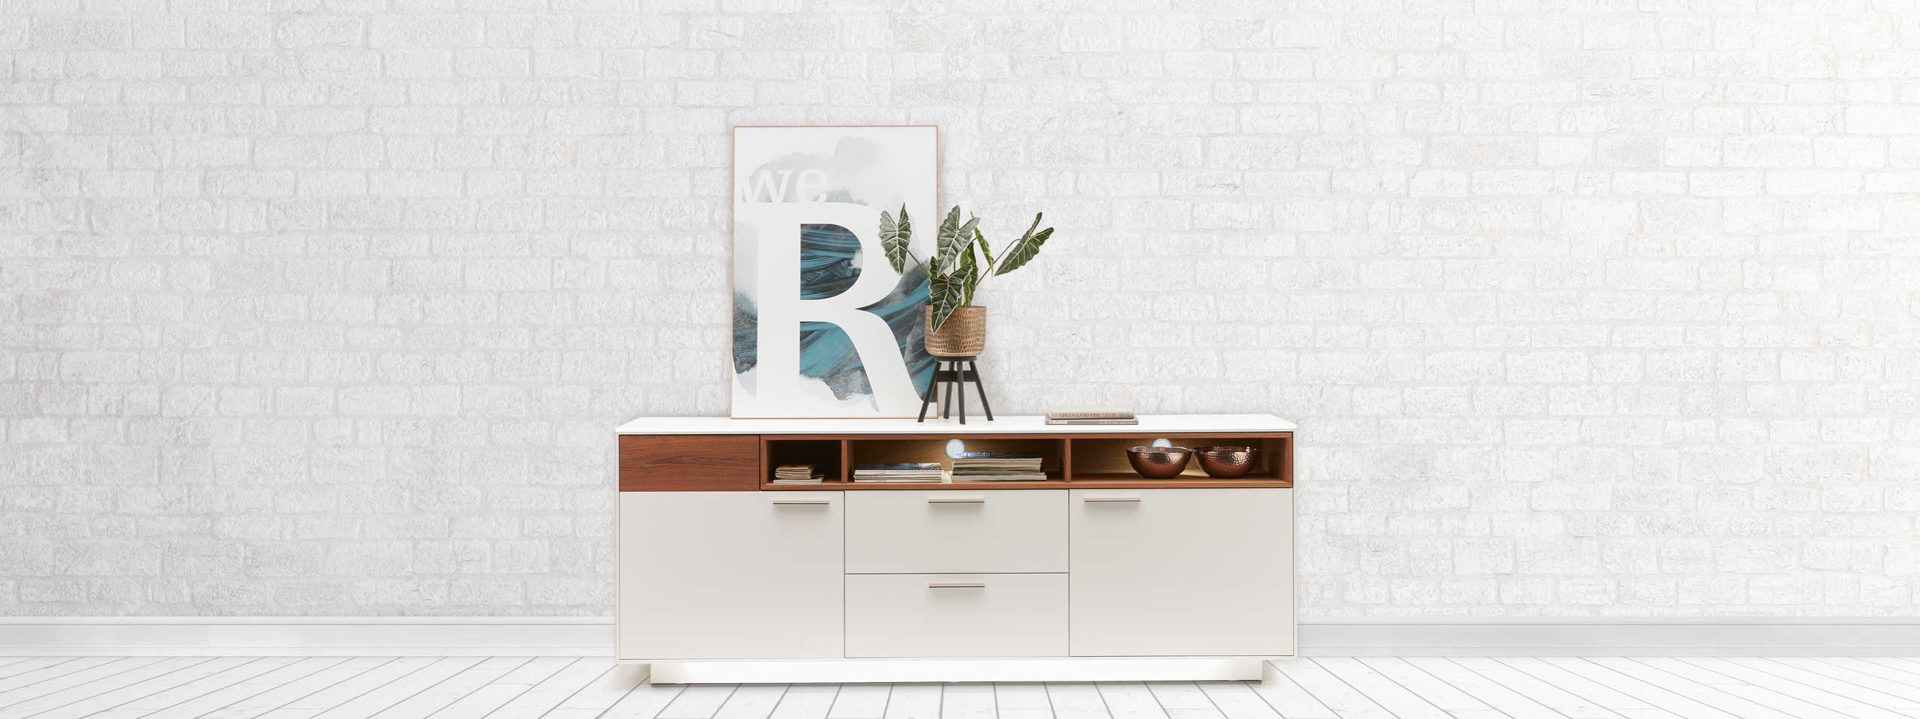 Interliving sideboards Serie 2102 Highlight 1